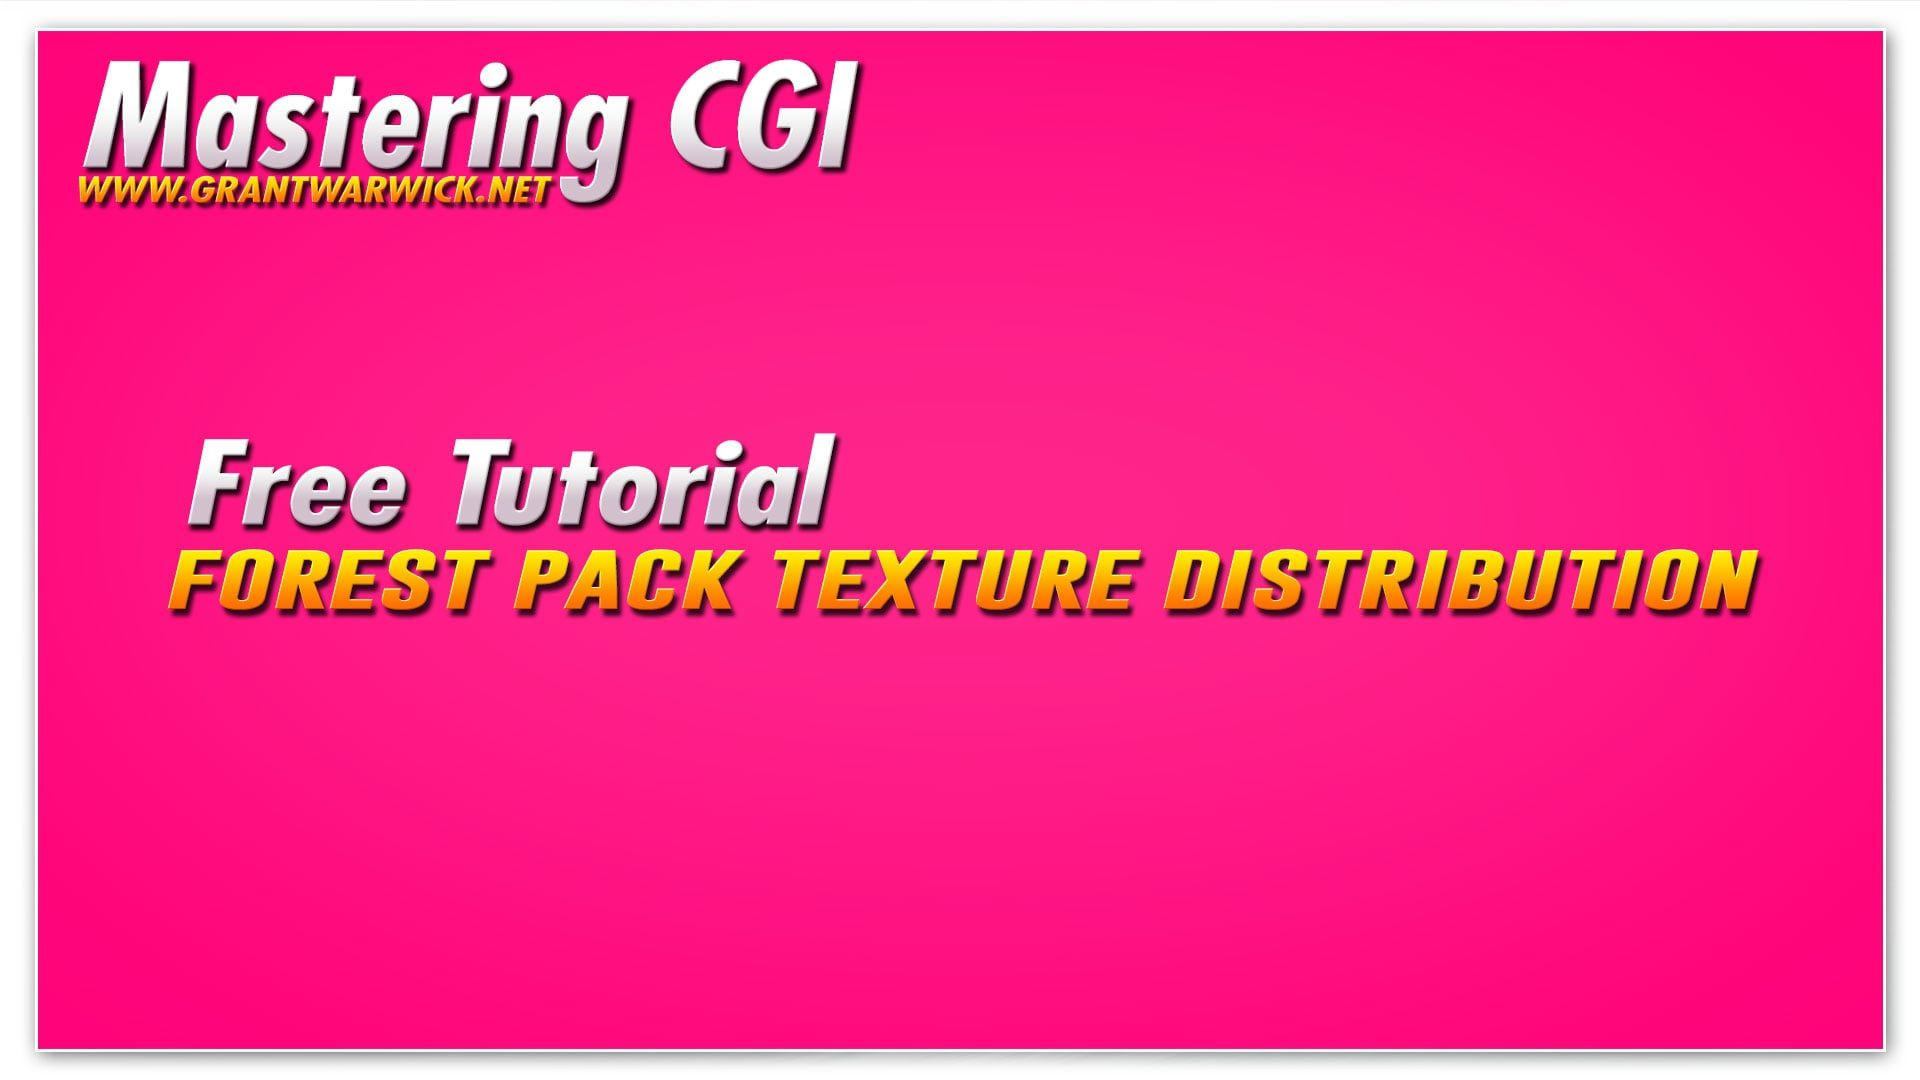 Mastering CGI Forest Pack Texture Distribution Tutorial